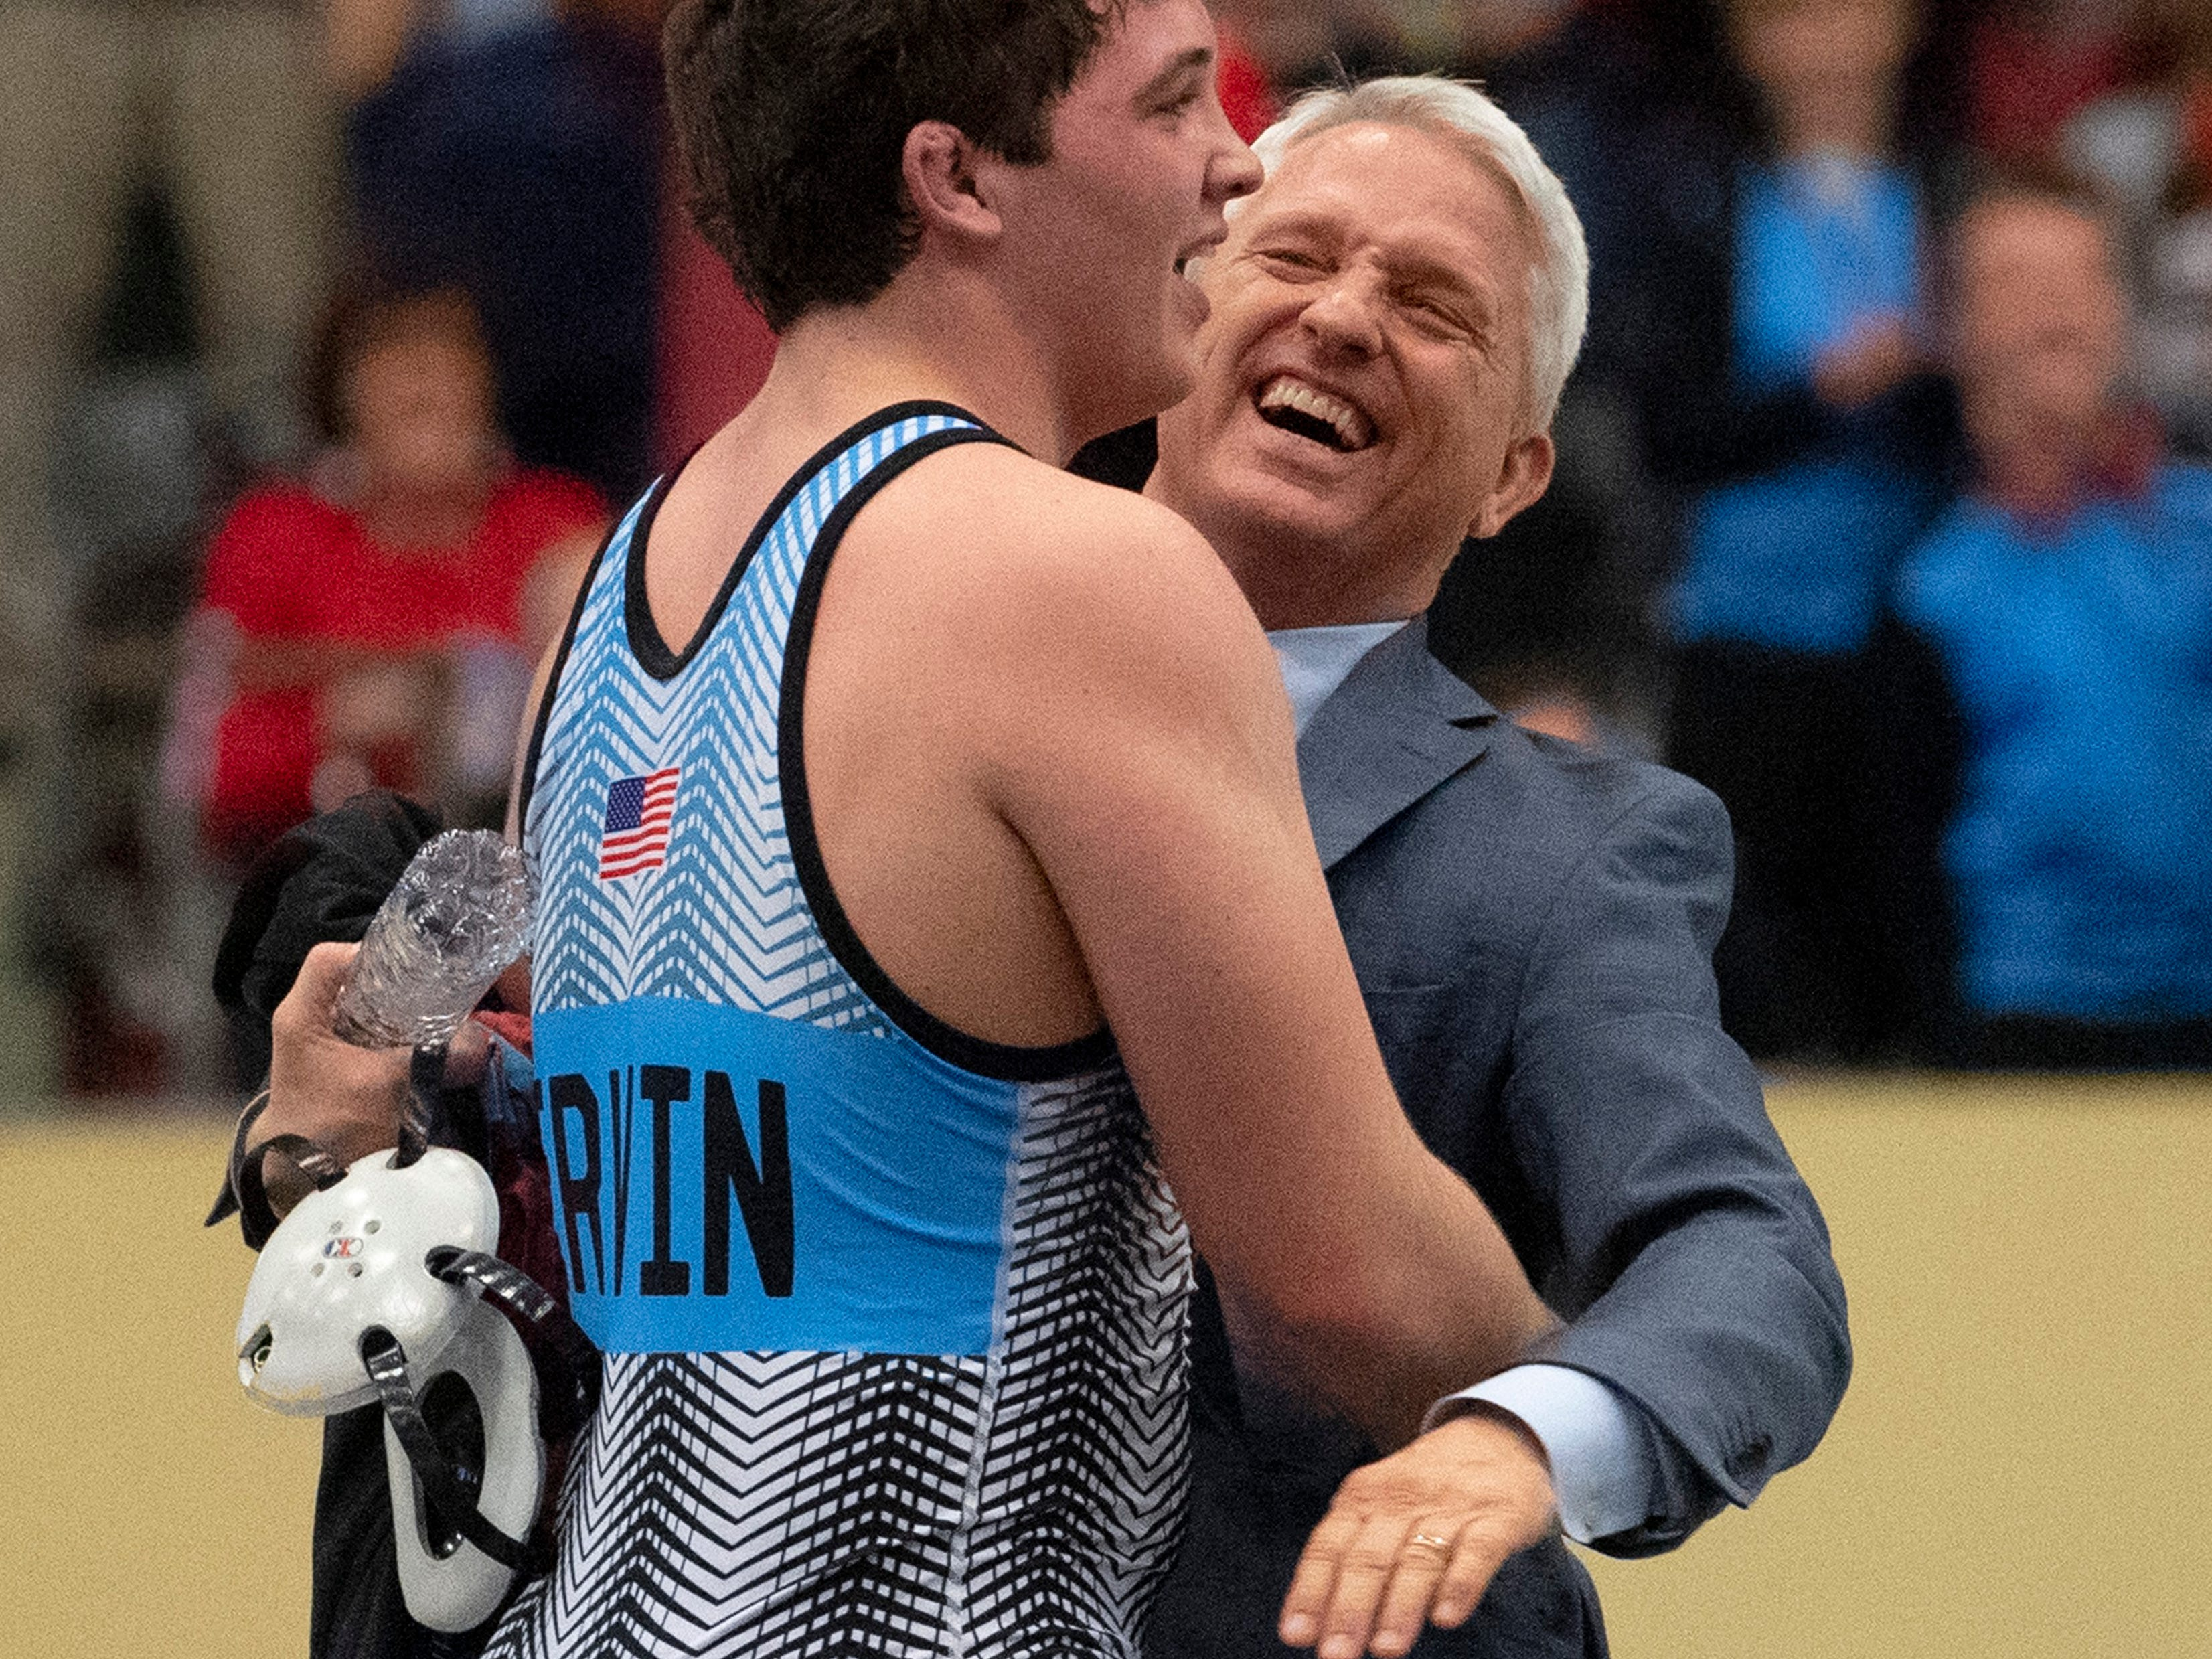 Union County head coach (and dad) Robert Ervin and his son, Mathias Ervin, celebrate after Mathias won the 220-pound championship match at the KHSAA State Wrestling Championships at the Alltech Arena in Lexington, Ky., Saturday afternoon. Ervin defeated Christian County's Niko Bussell with a 3-1 decision for his second state championship.